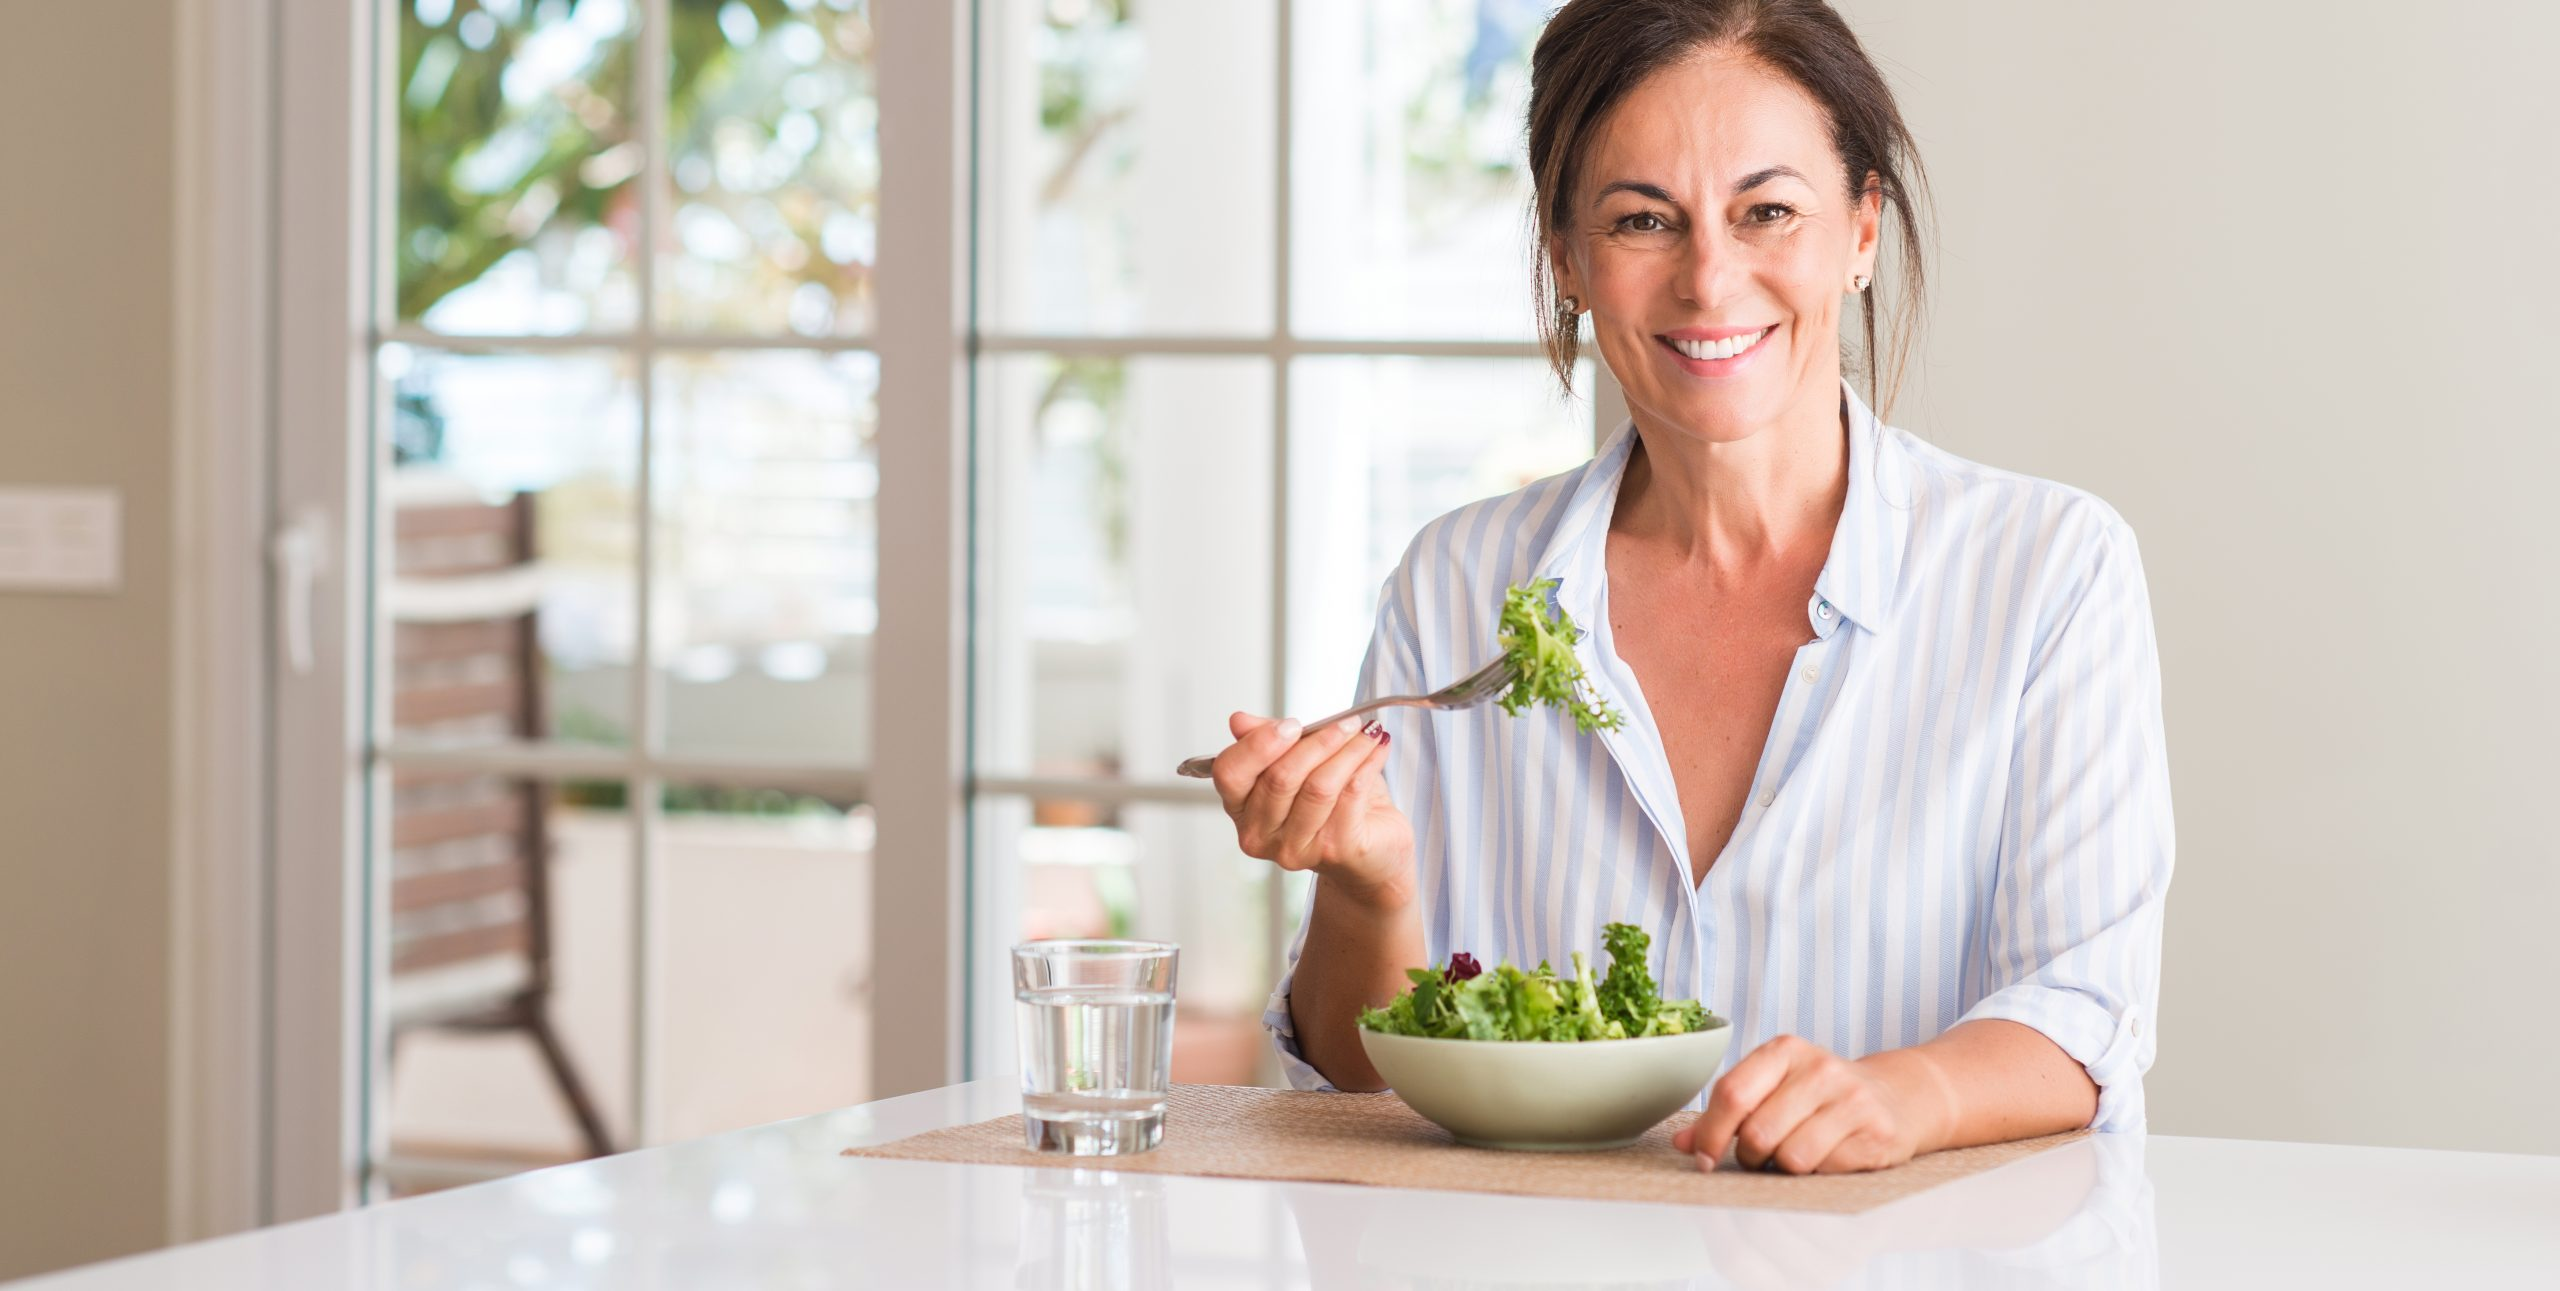 8 Ways to Naturally Improve Your Digestive Track